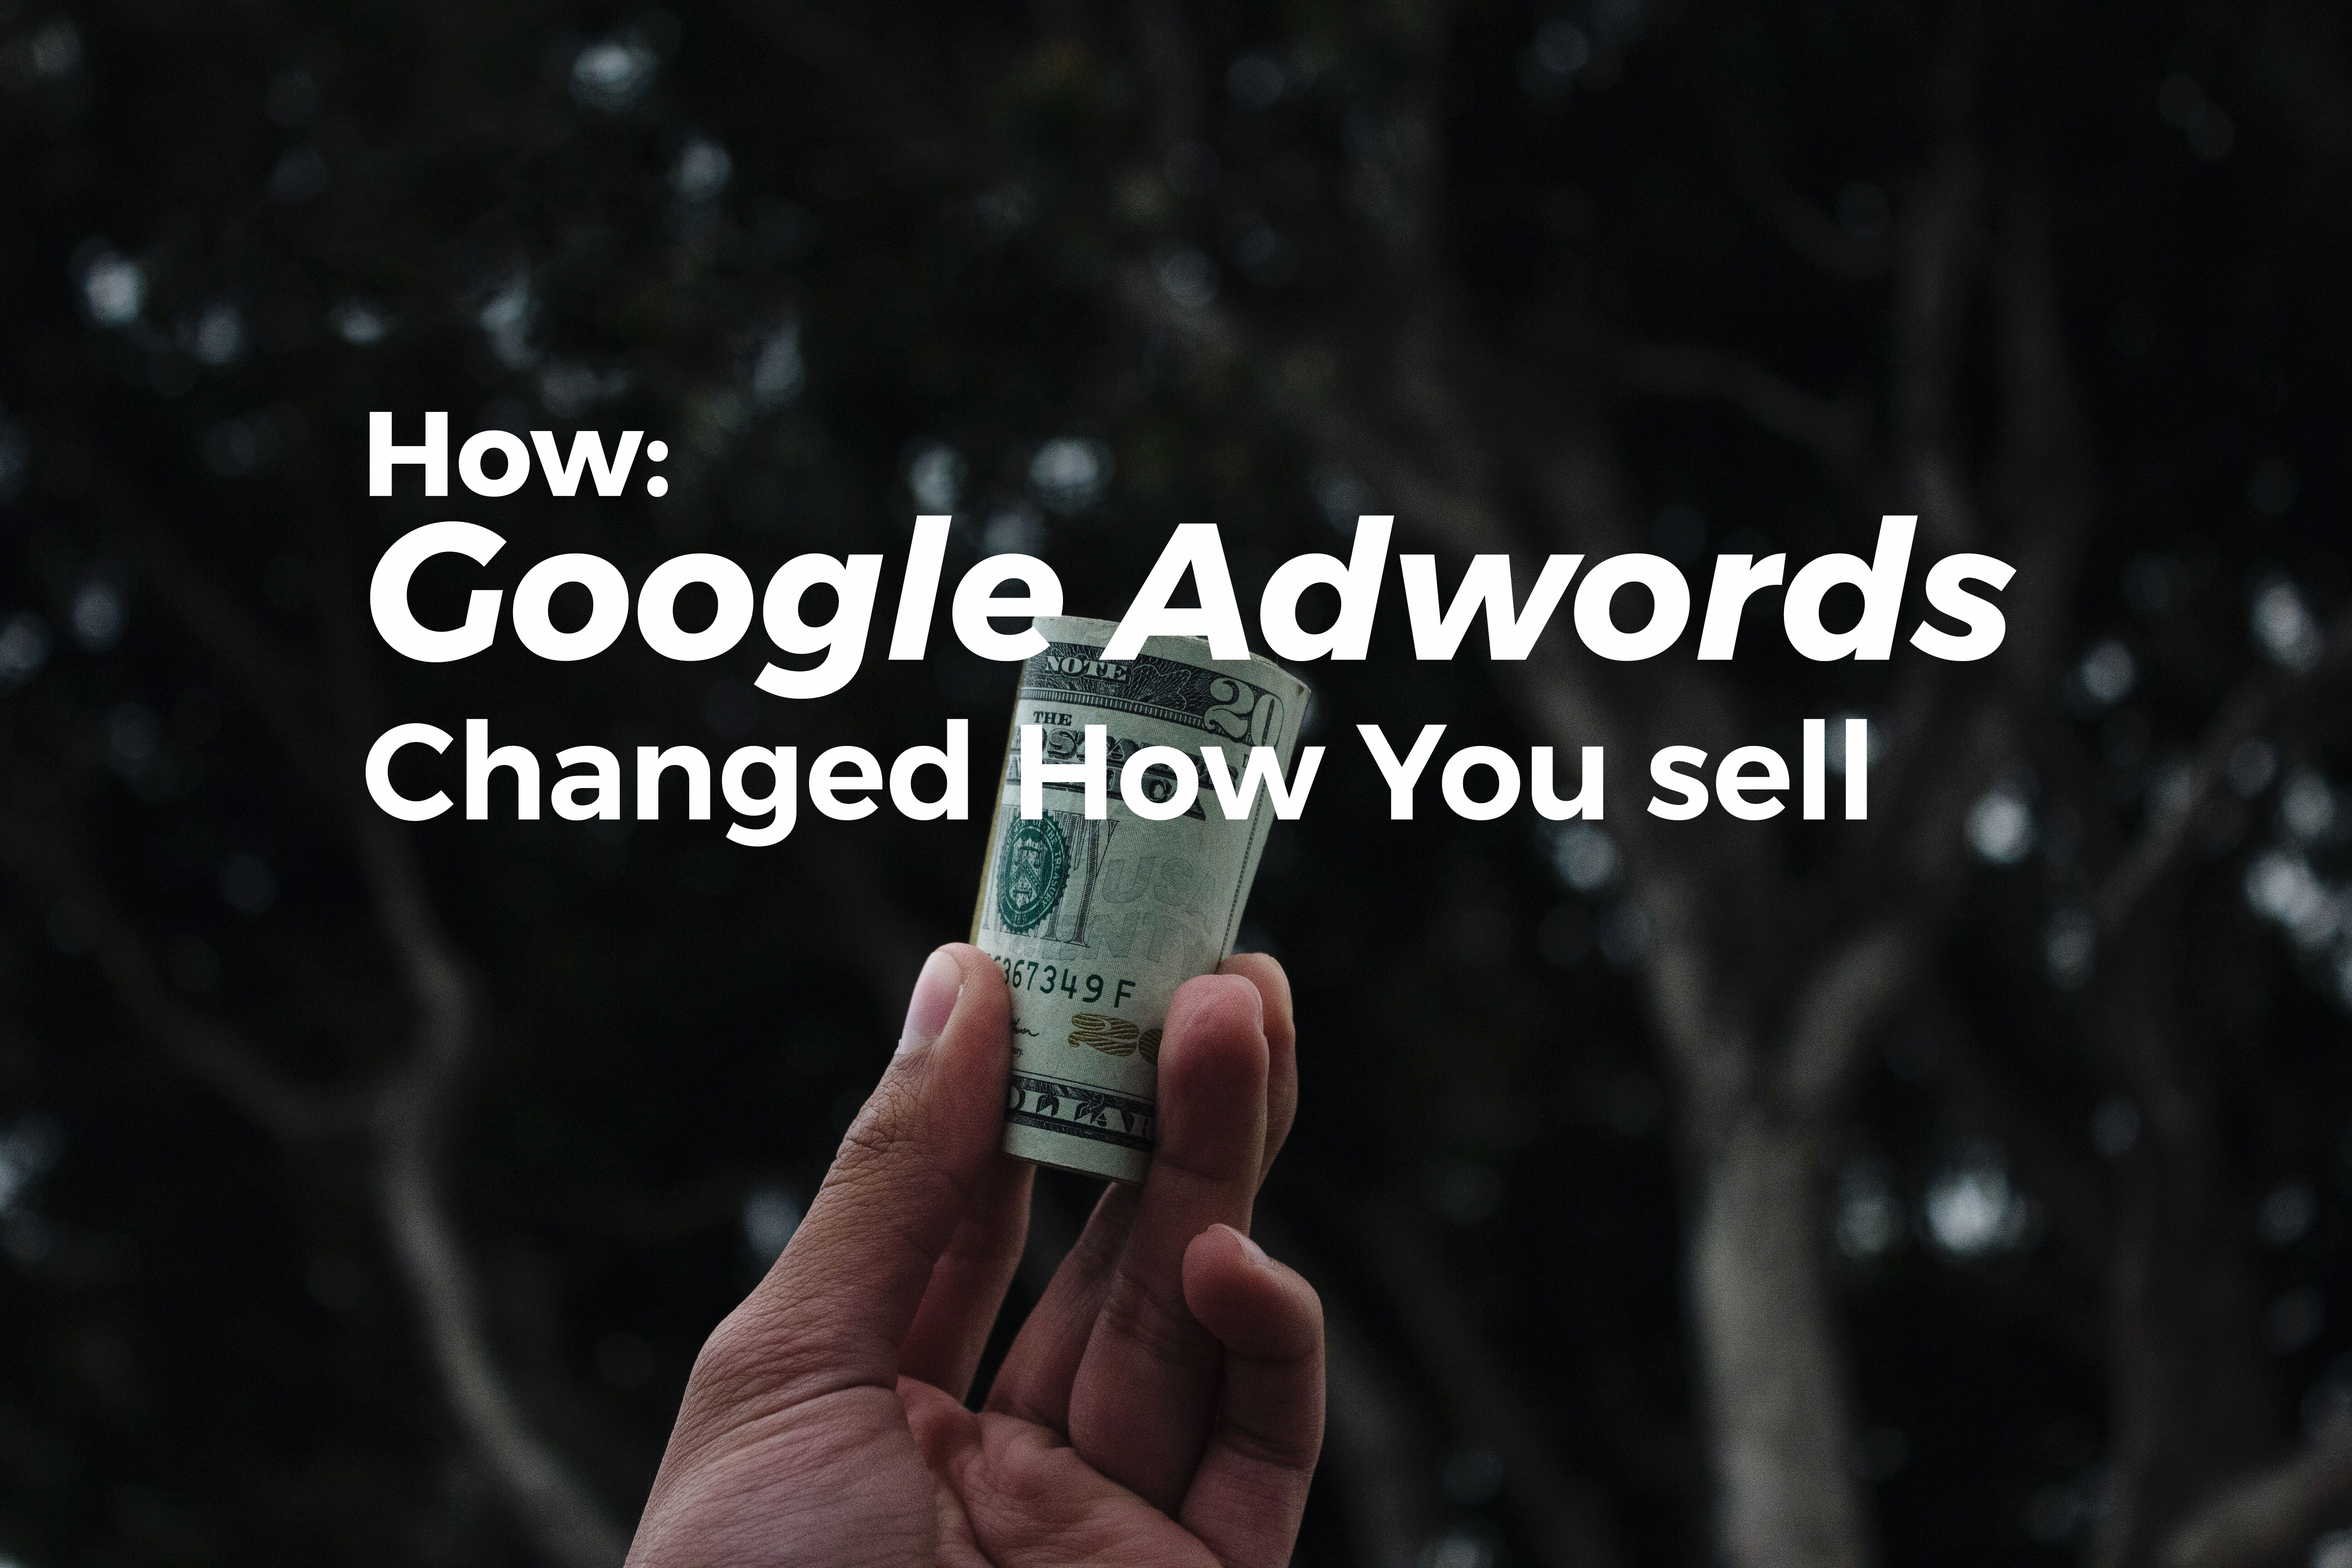 How Google Adwords Changed How You Sell